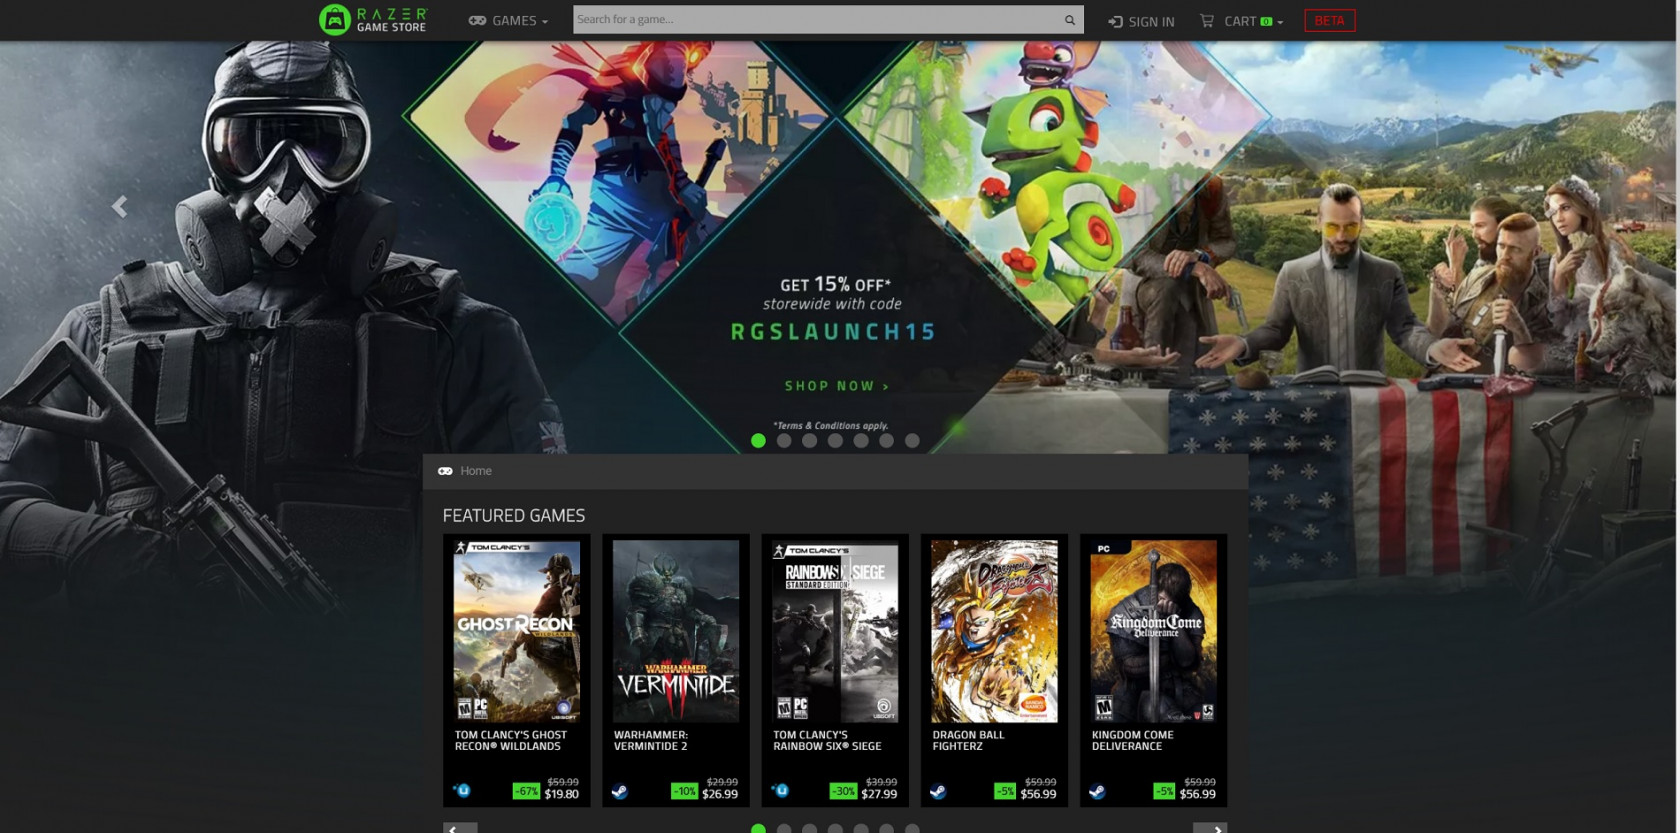 Razer's new online game store offers discounts and rewards to buyers